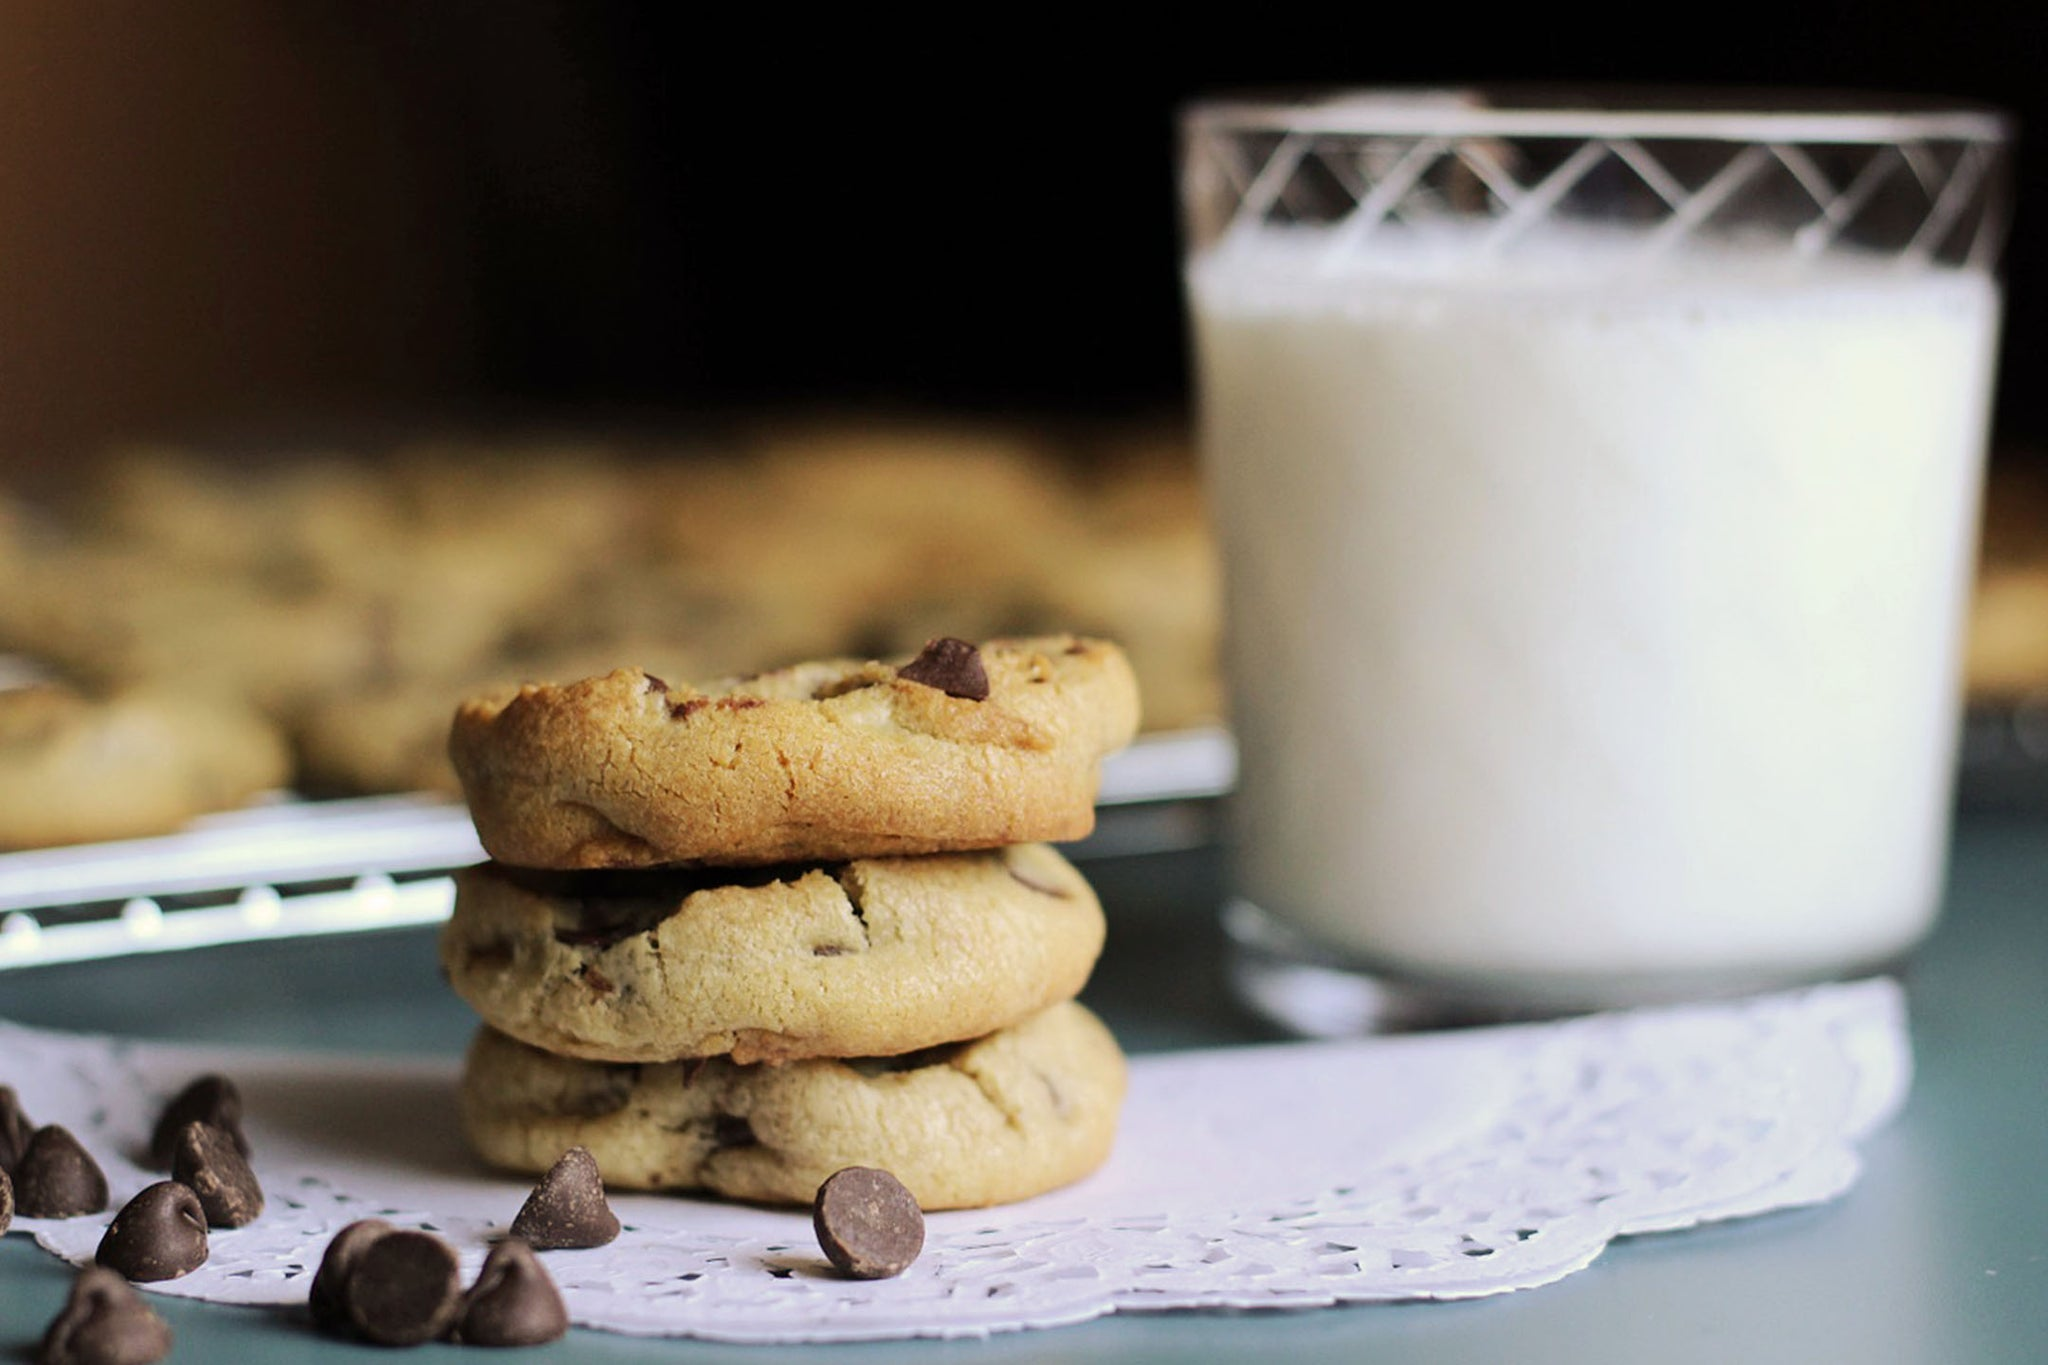 Herbal Infused Chocolate Chip Cookies from Scratch